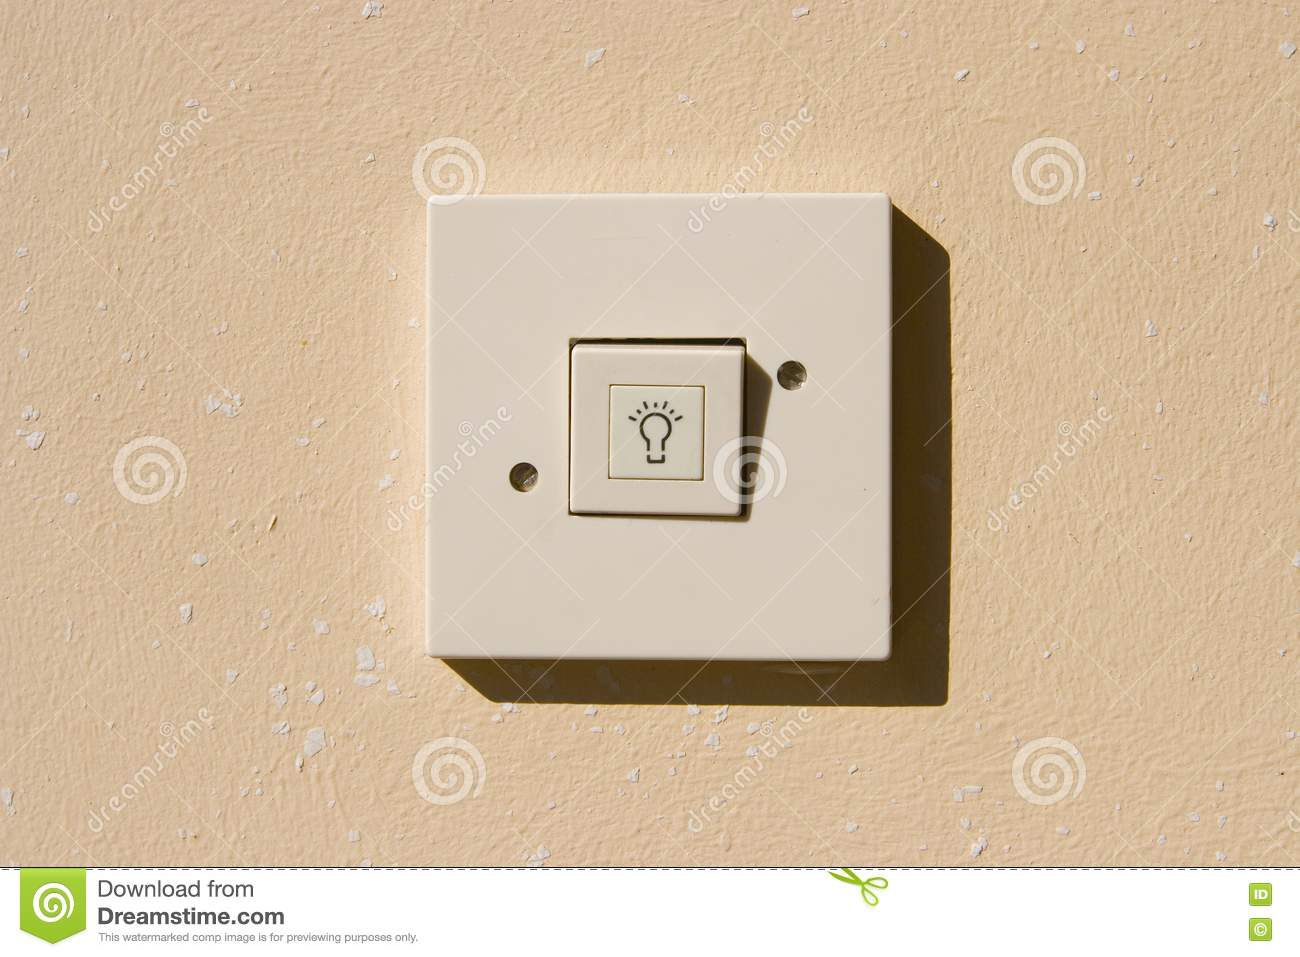 Traditional Electrical Switch Picture  Image: 2632377